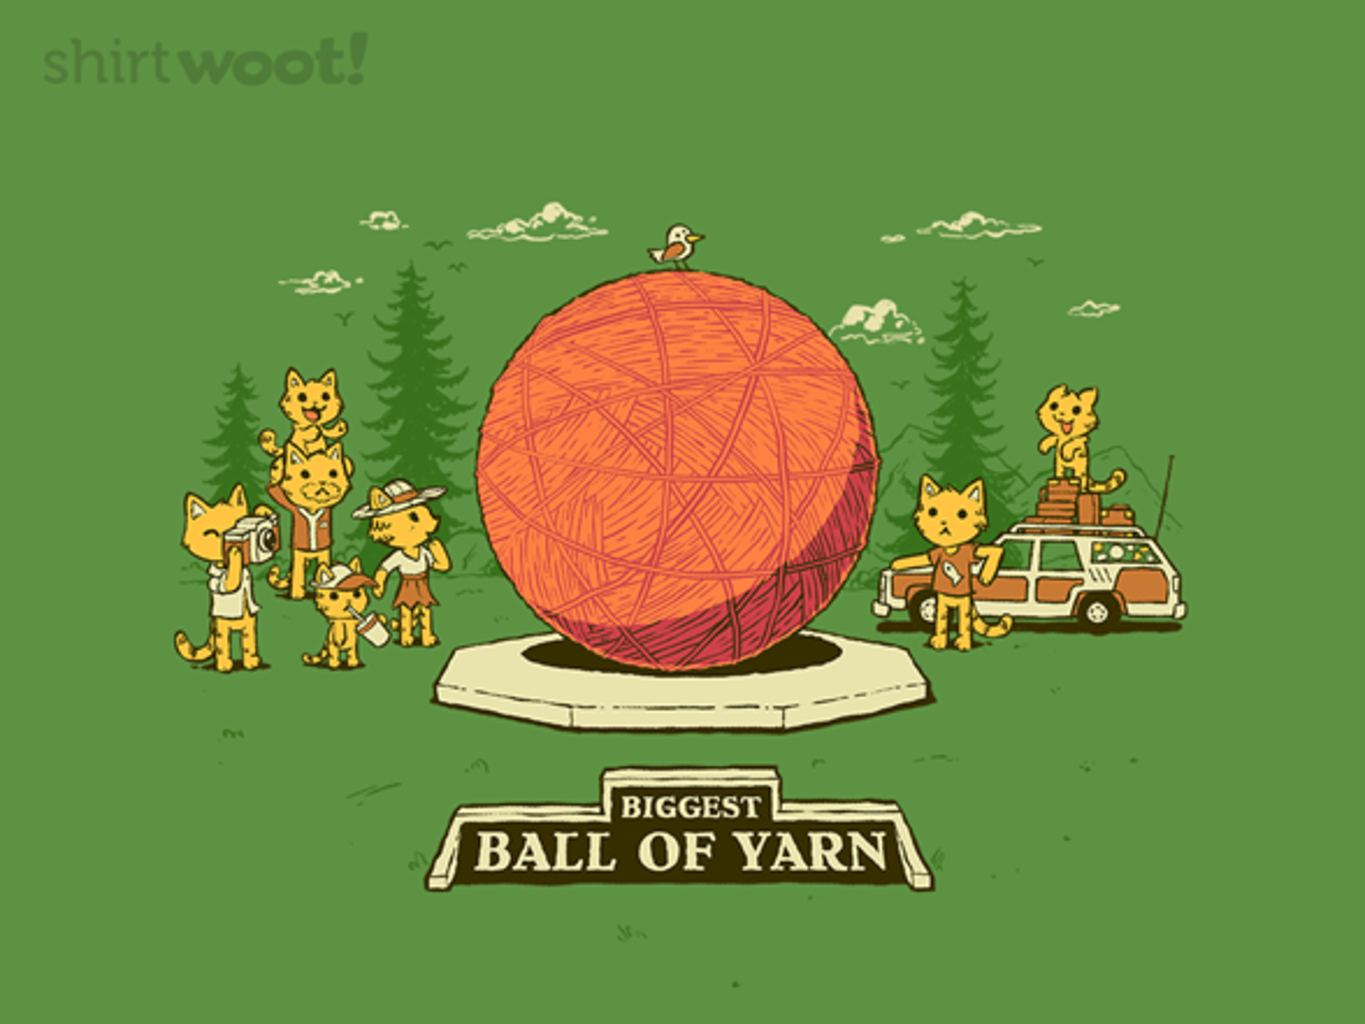 Woot!: Greetings from the Yarn Ball - $15.00 + Free shipping